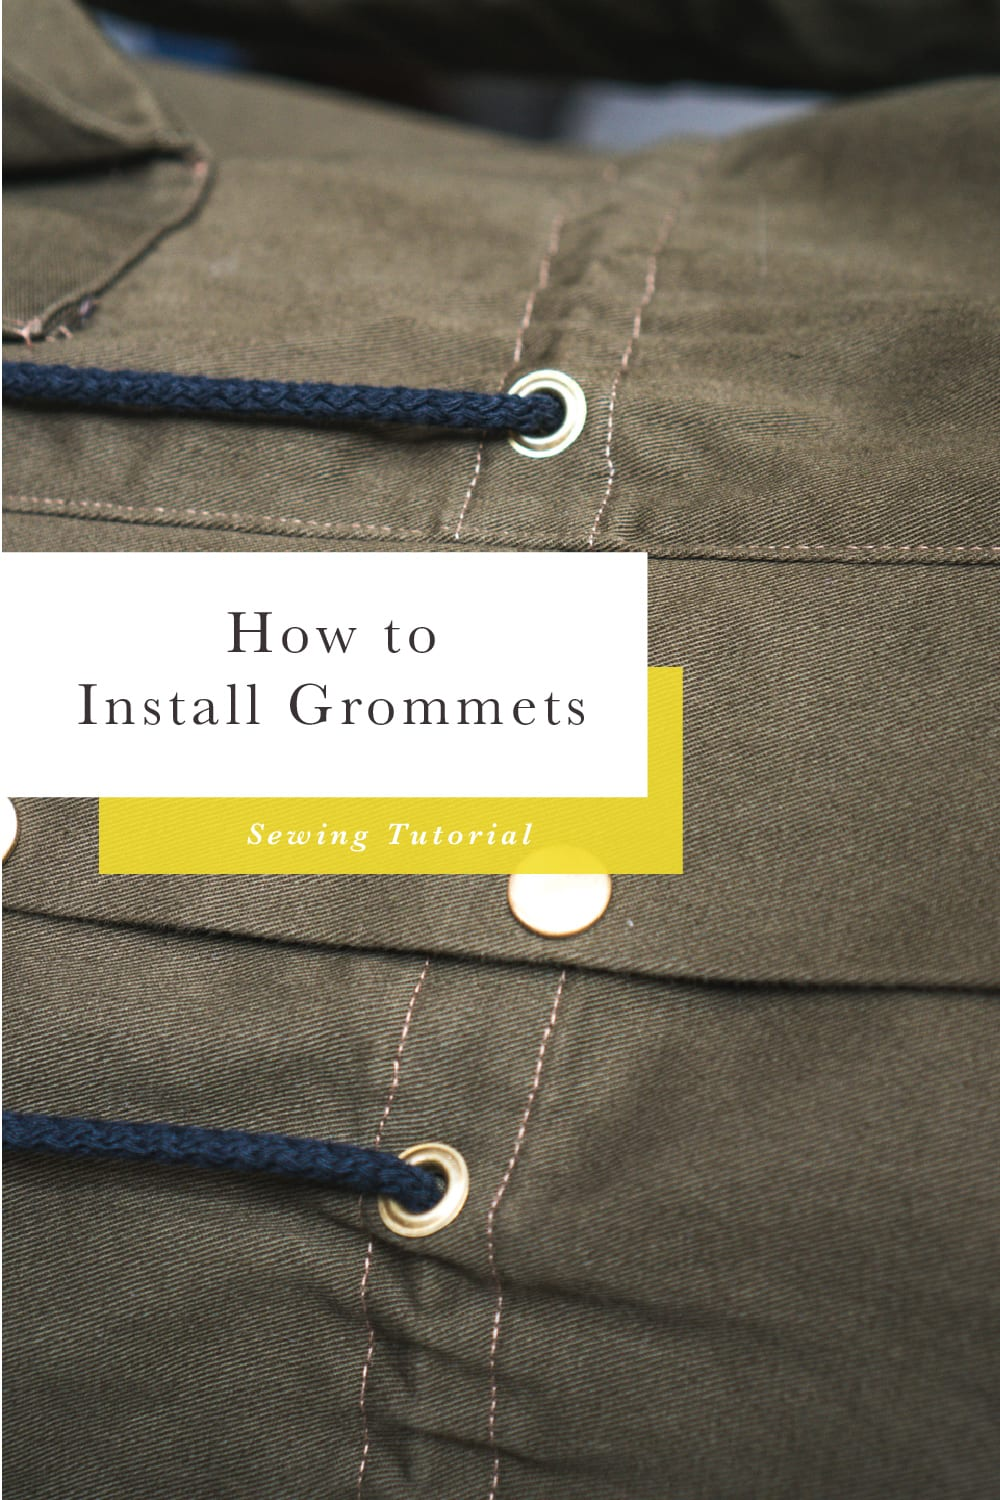 How to install grommets // Closet Case Patterns